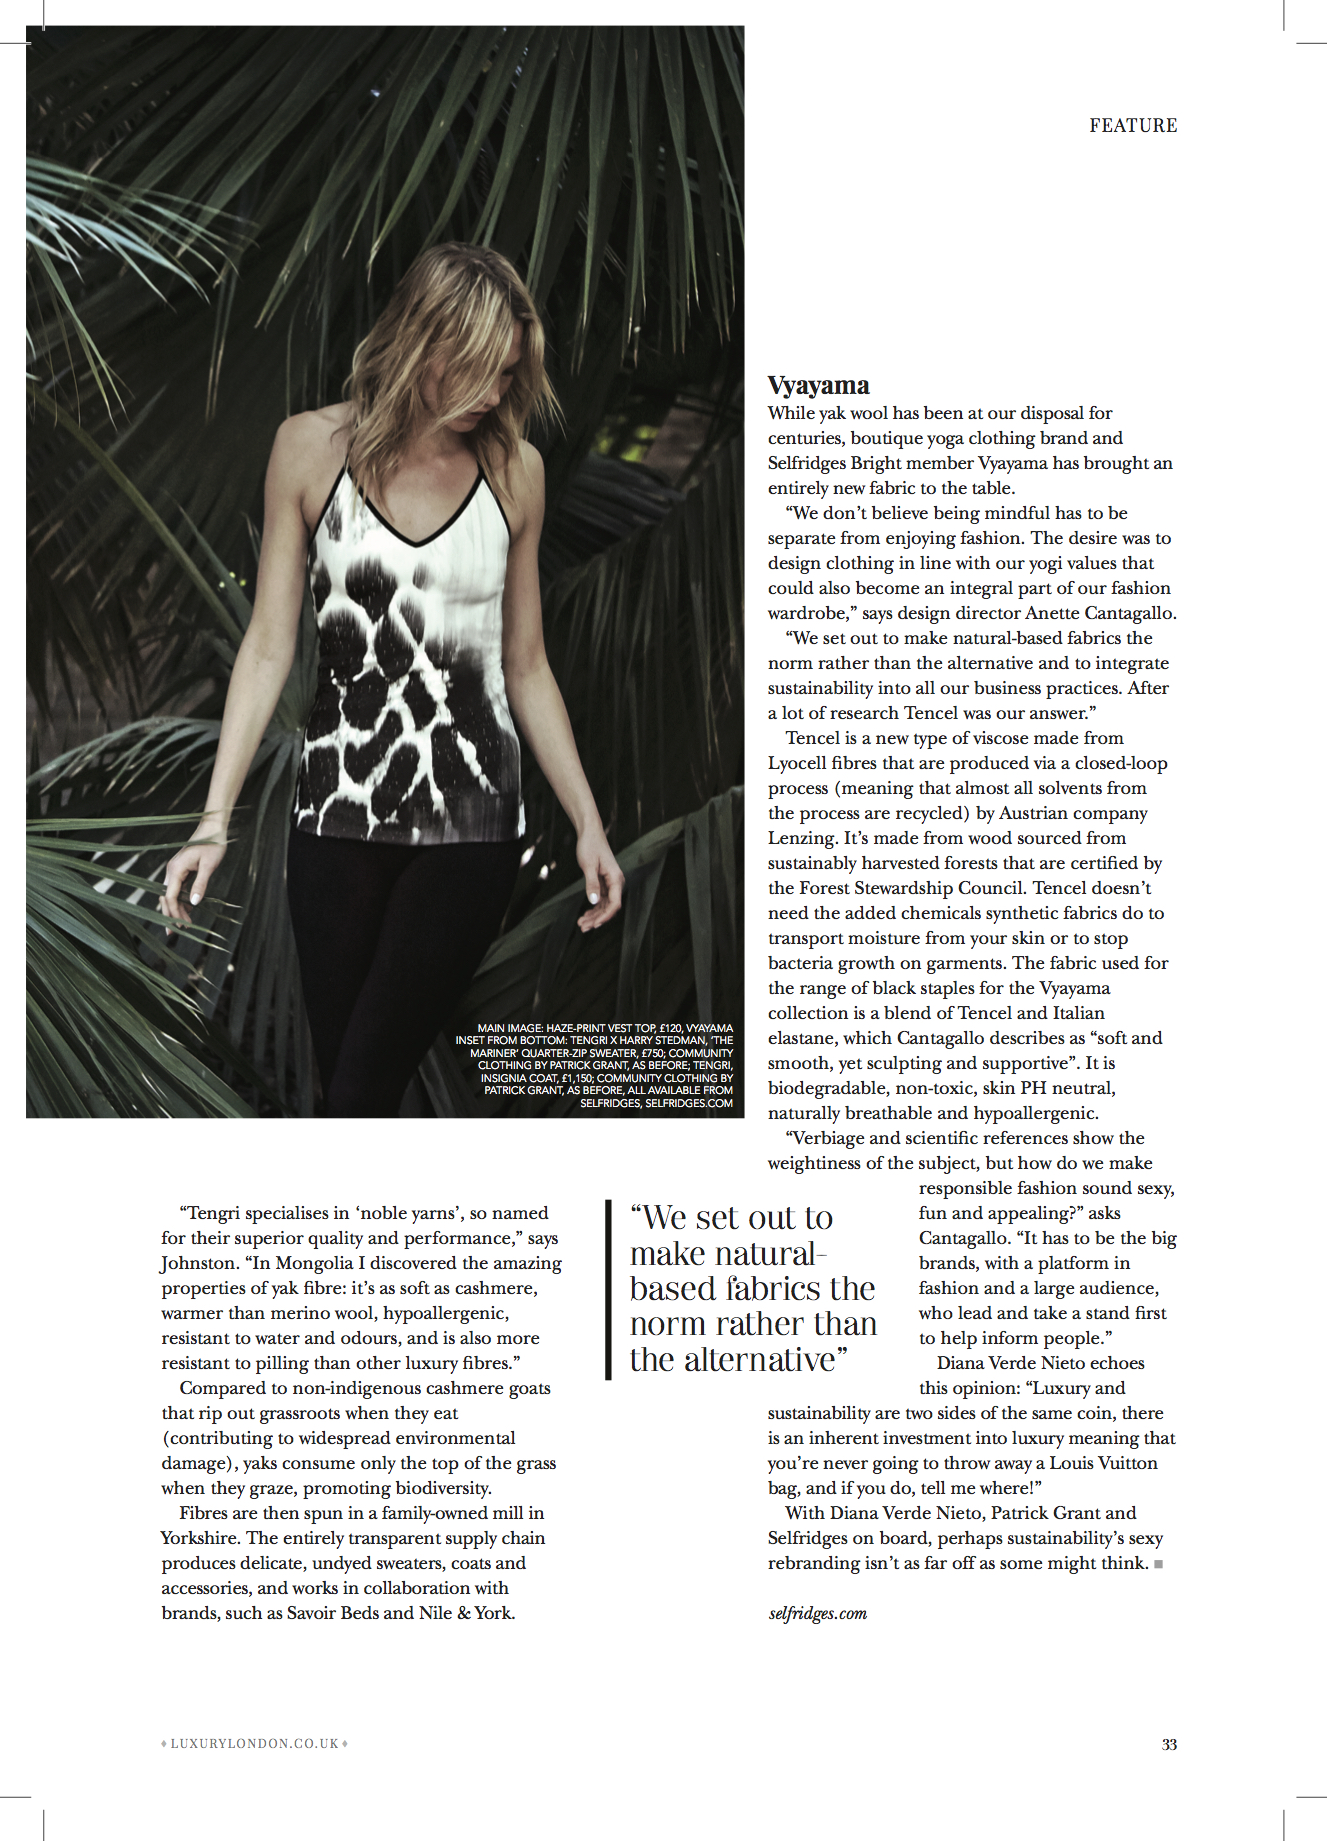 Originally published by The Mayfair Magazine